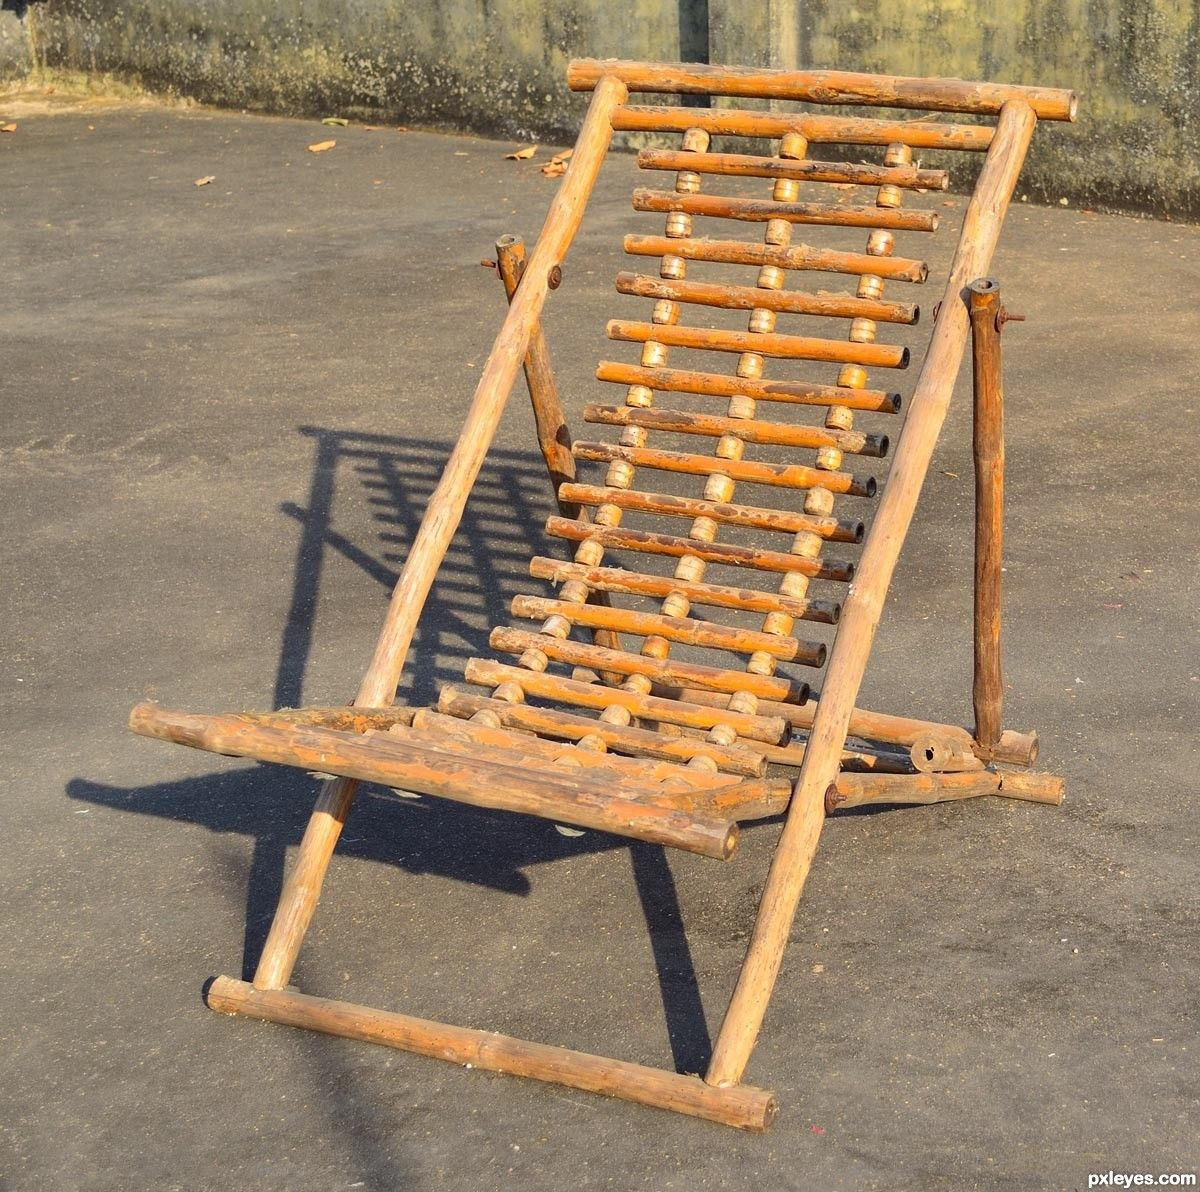 bamboo chairs - Google Search